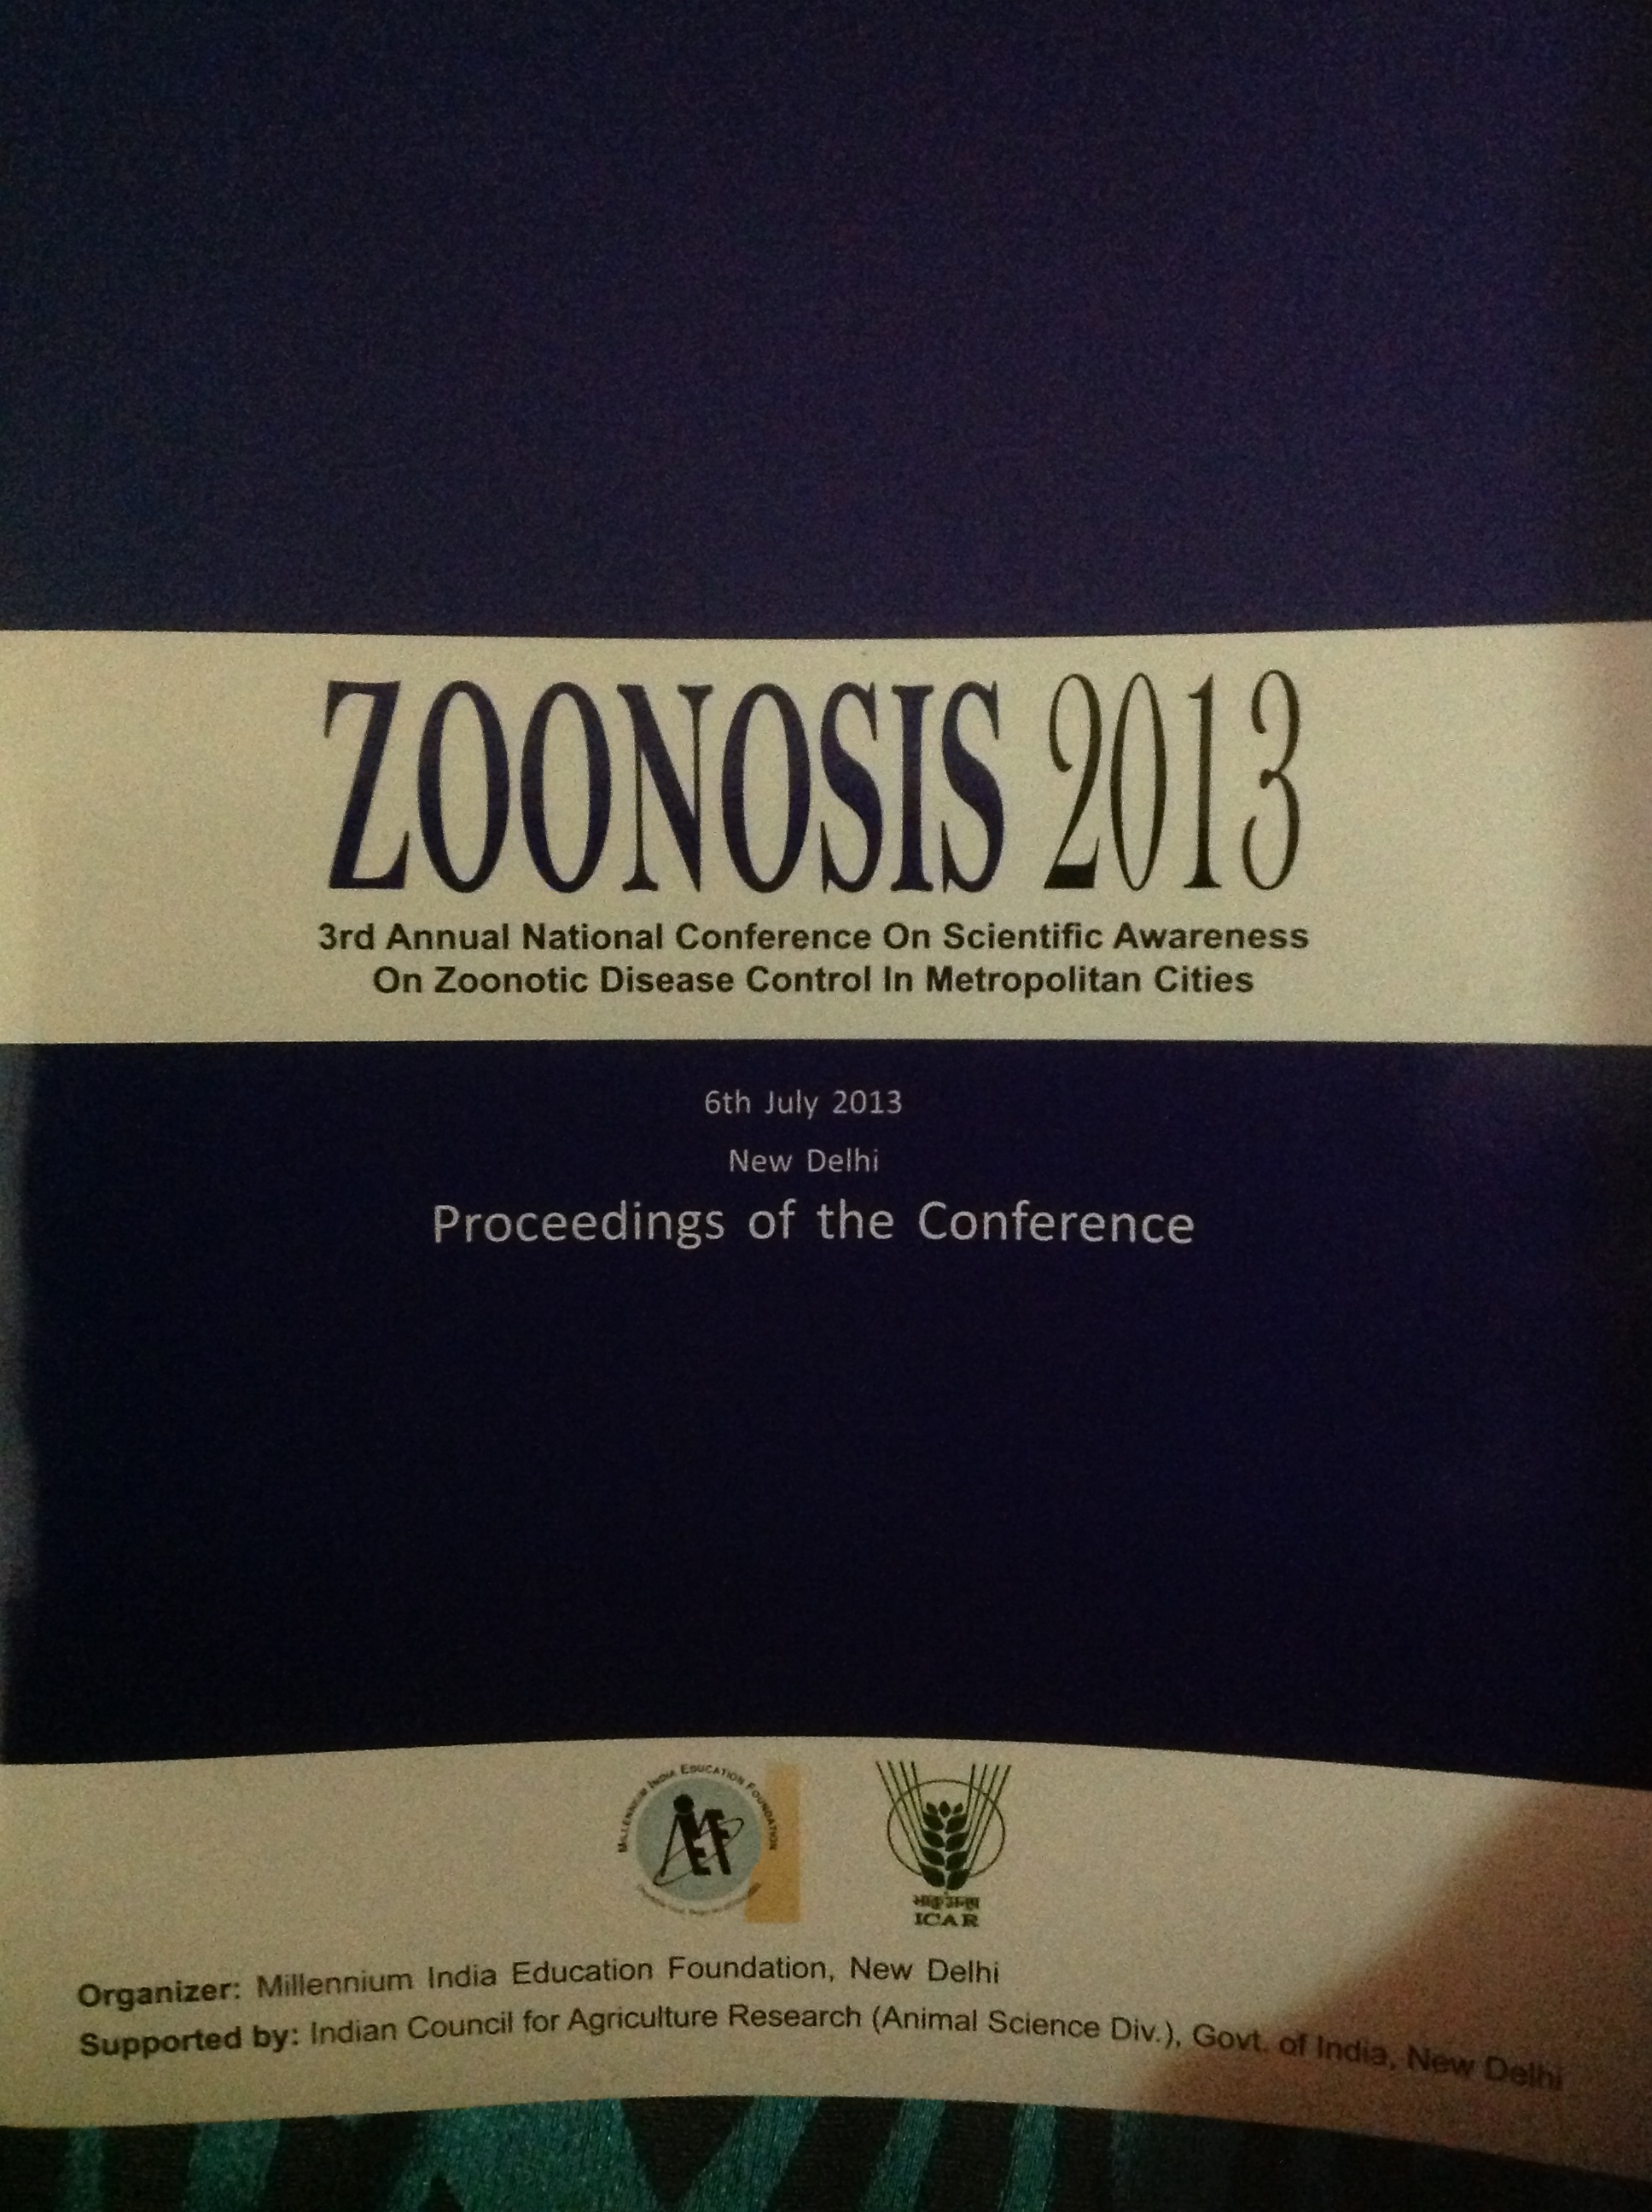 National Conference on Scientific Awareness on Zoonotic Disease control